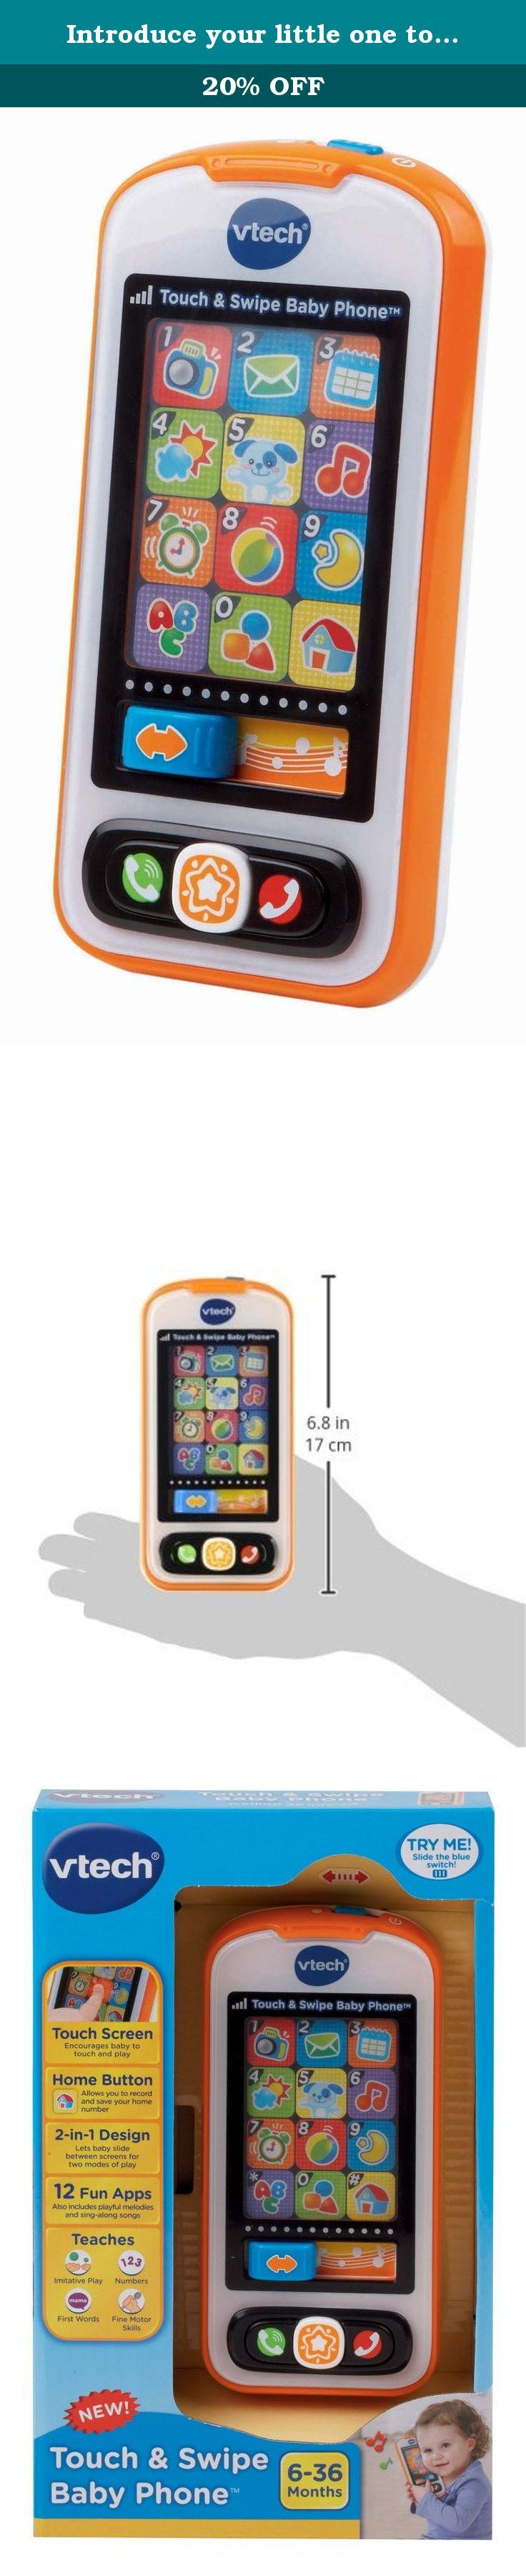 Introduce your little one to the world of smart phones